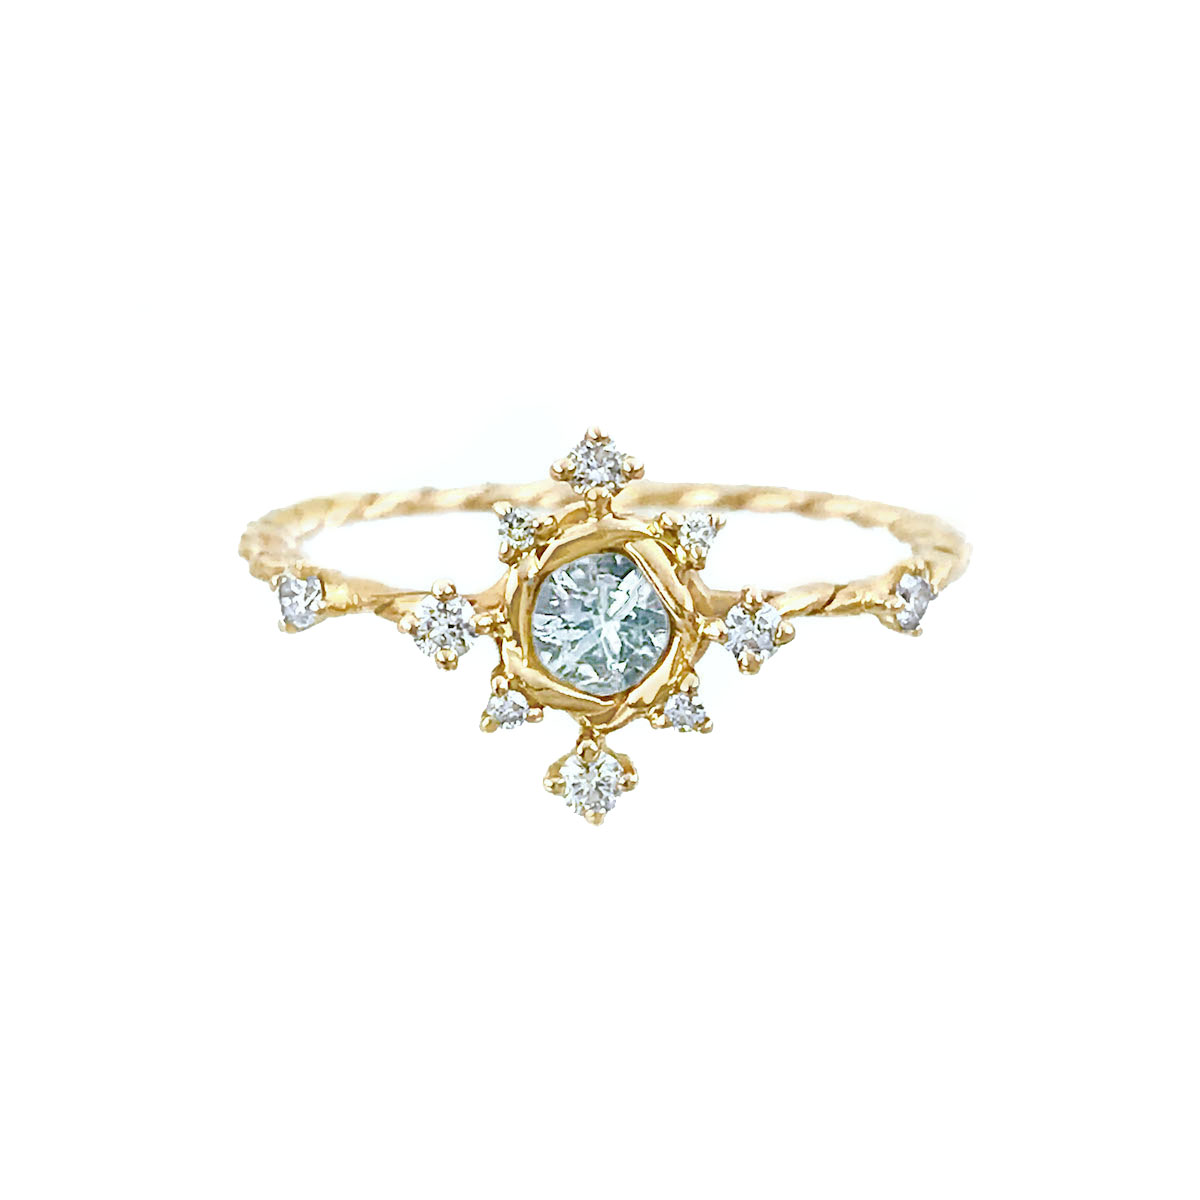 Aquamatine-Diamond-alternative-Bridal-Engagement-Ring-JeweLyrie_4783YG